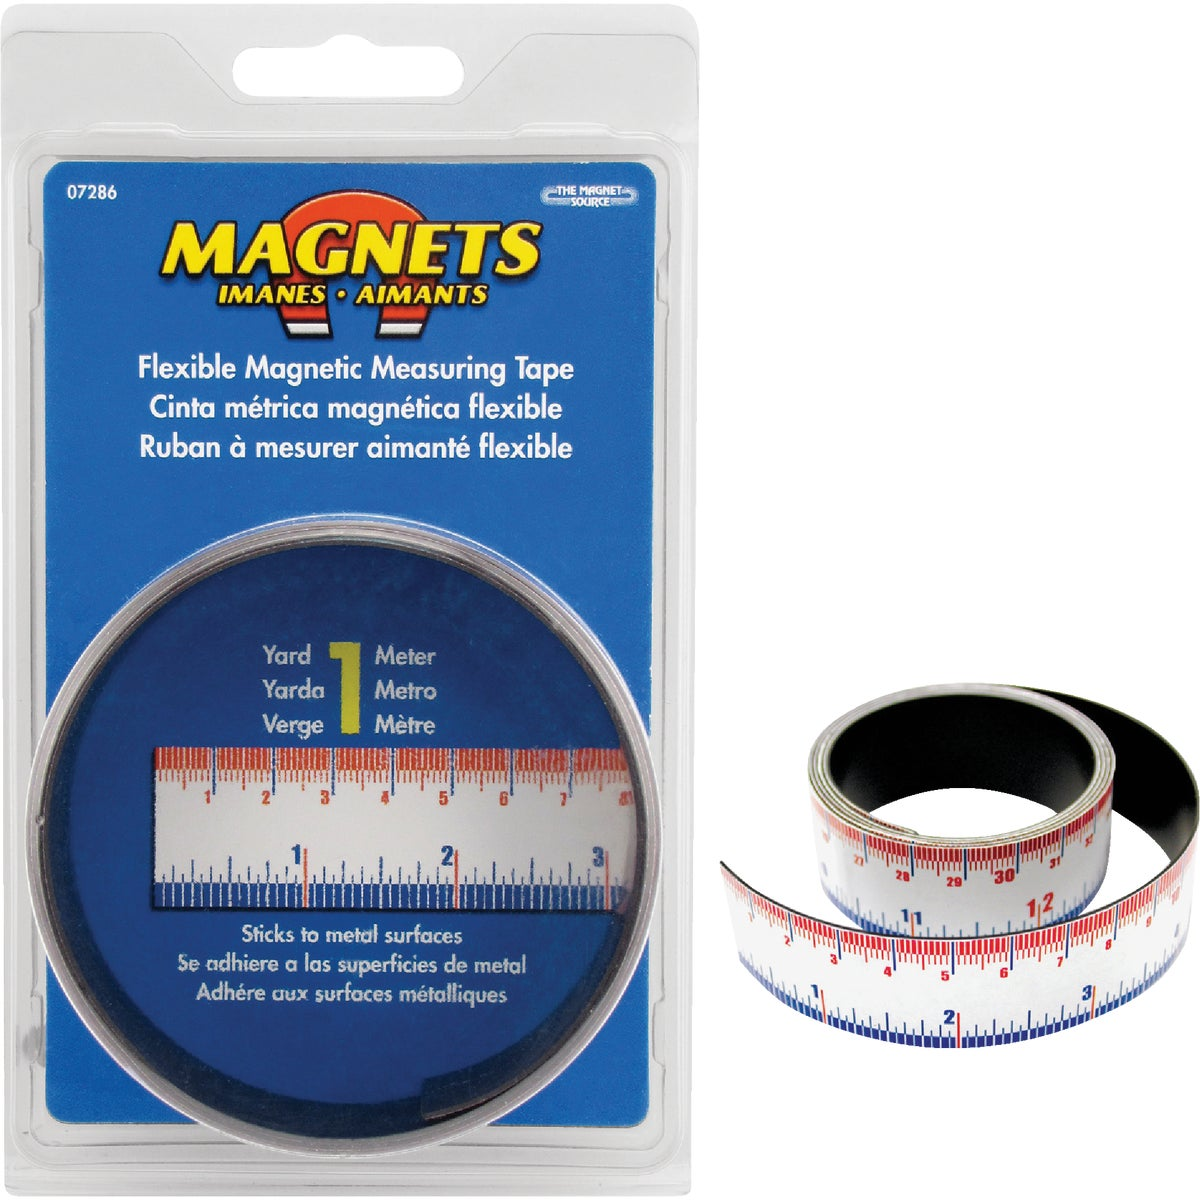 FLEX MAGNETIC TAPE RULE - 07286 by Master Magnetics